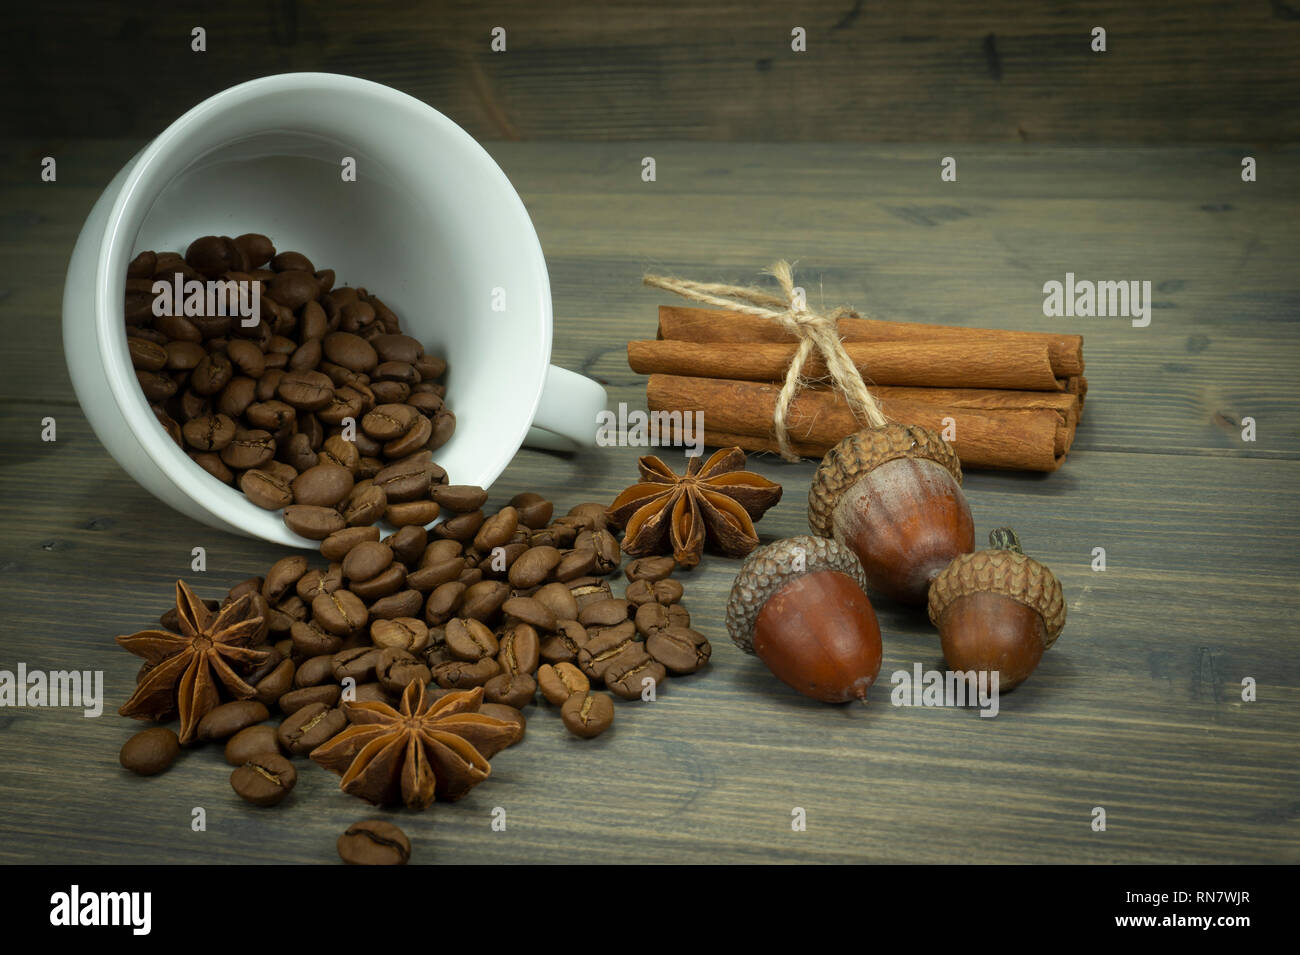 Roasted Coffee Beans Spilling From A Cup Acorns And